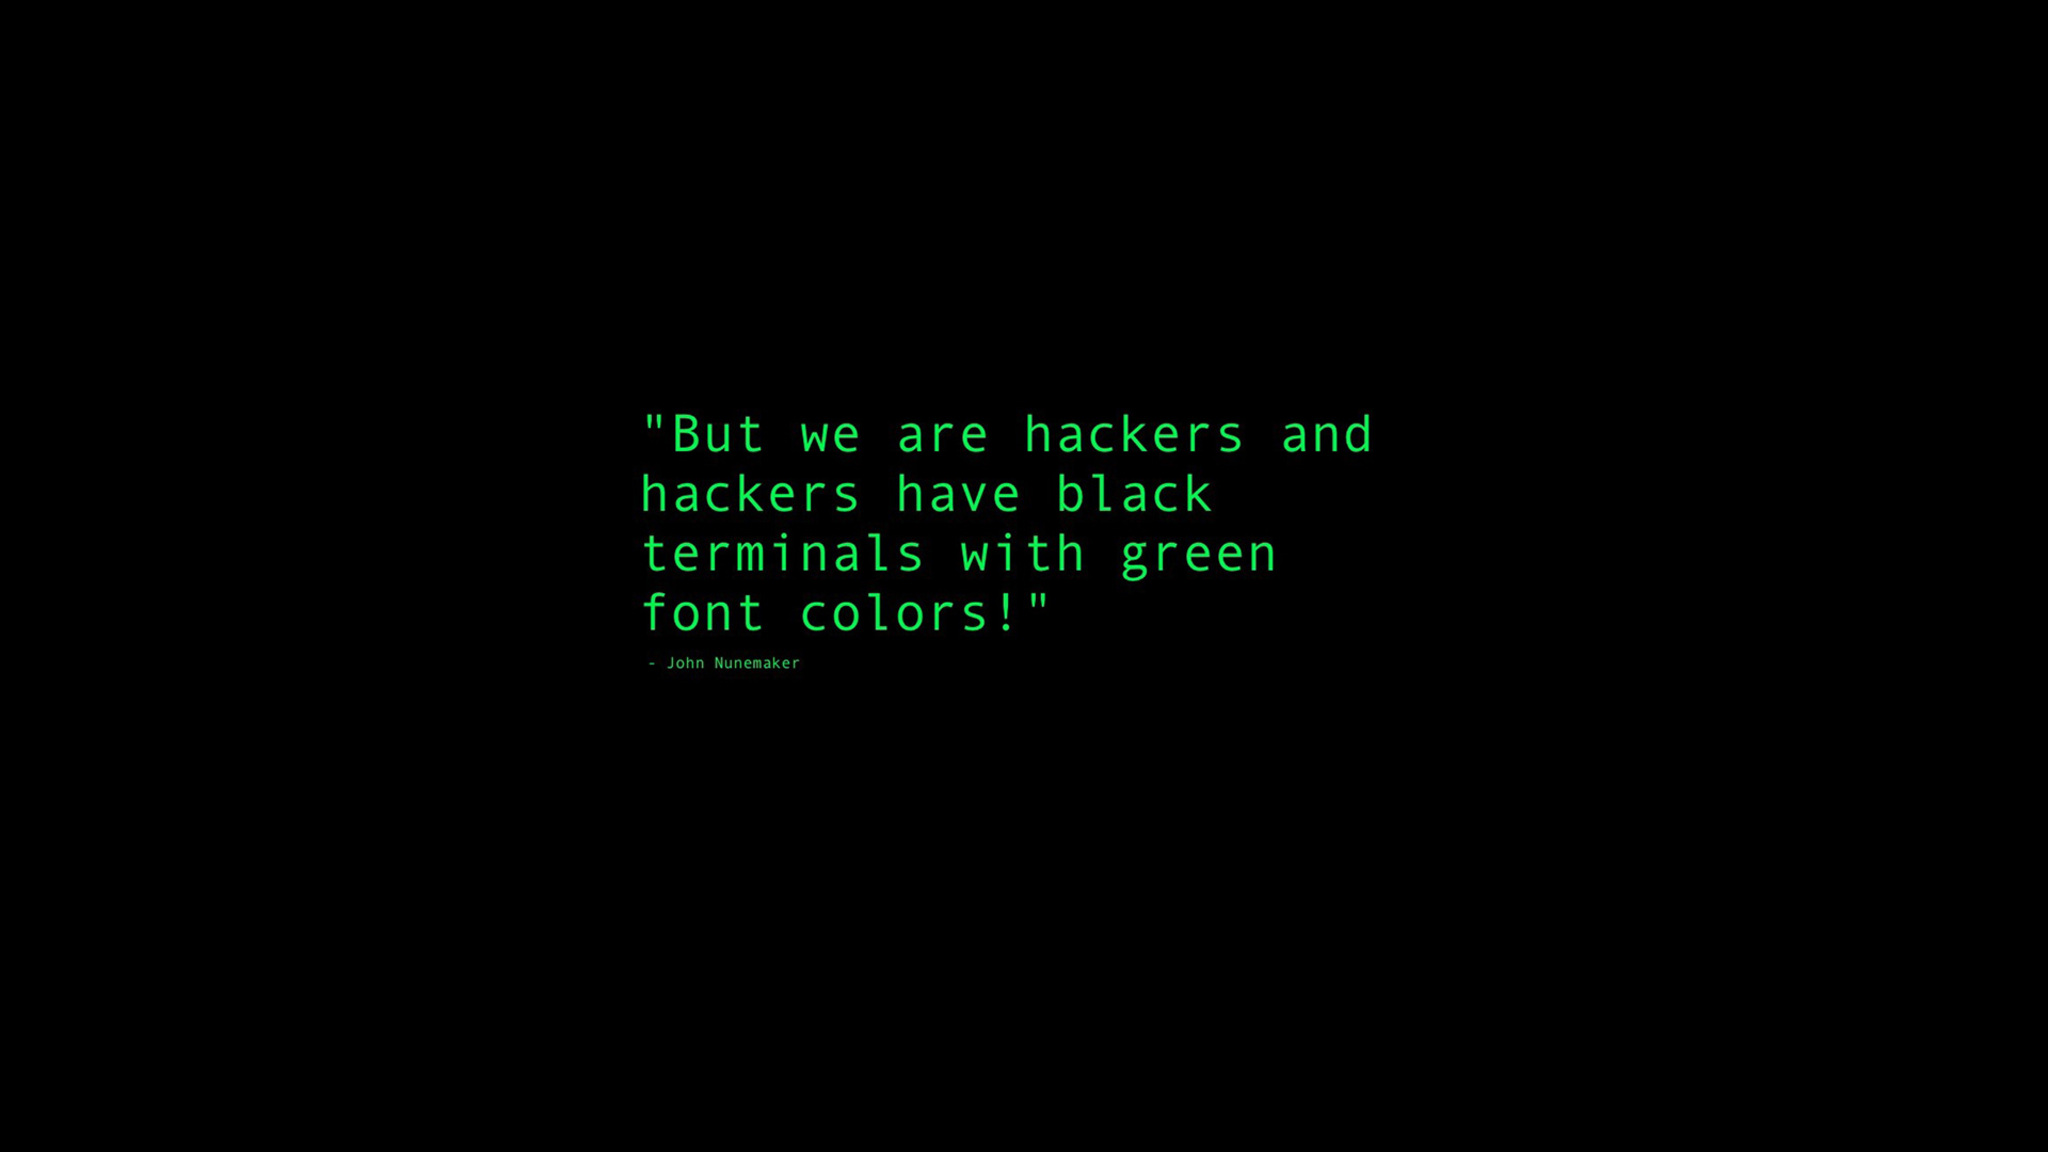 2048x1152 black terminals with green font colors quote - Hd wallpapers for laptop with quotes ...